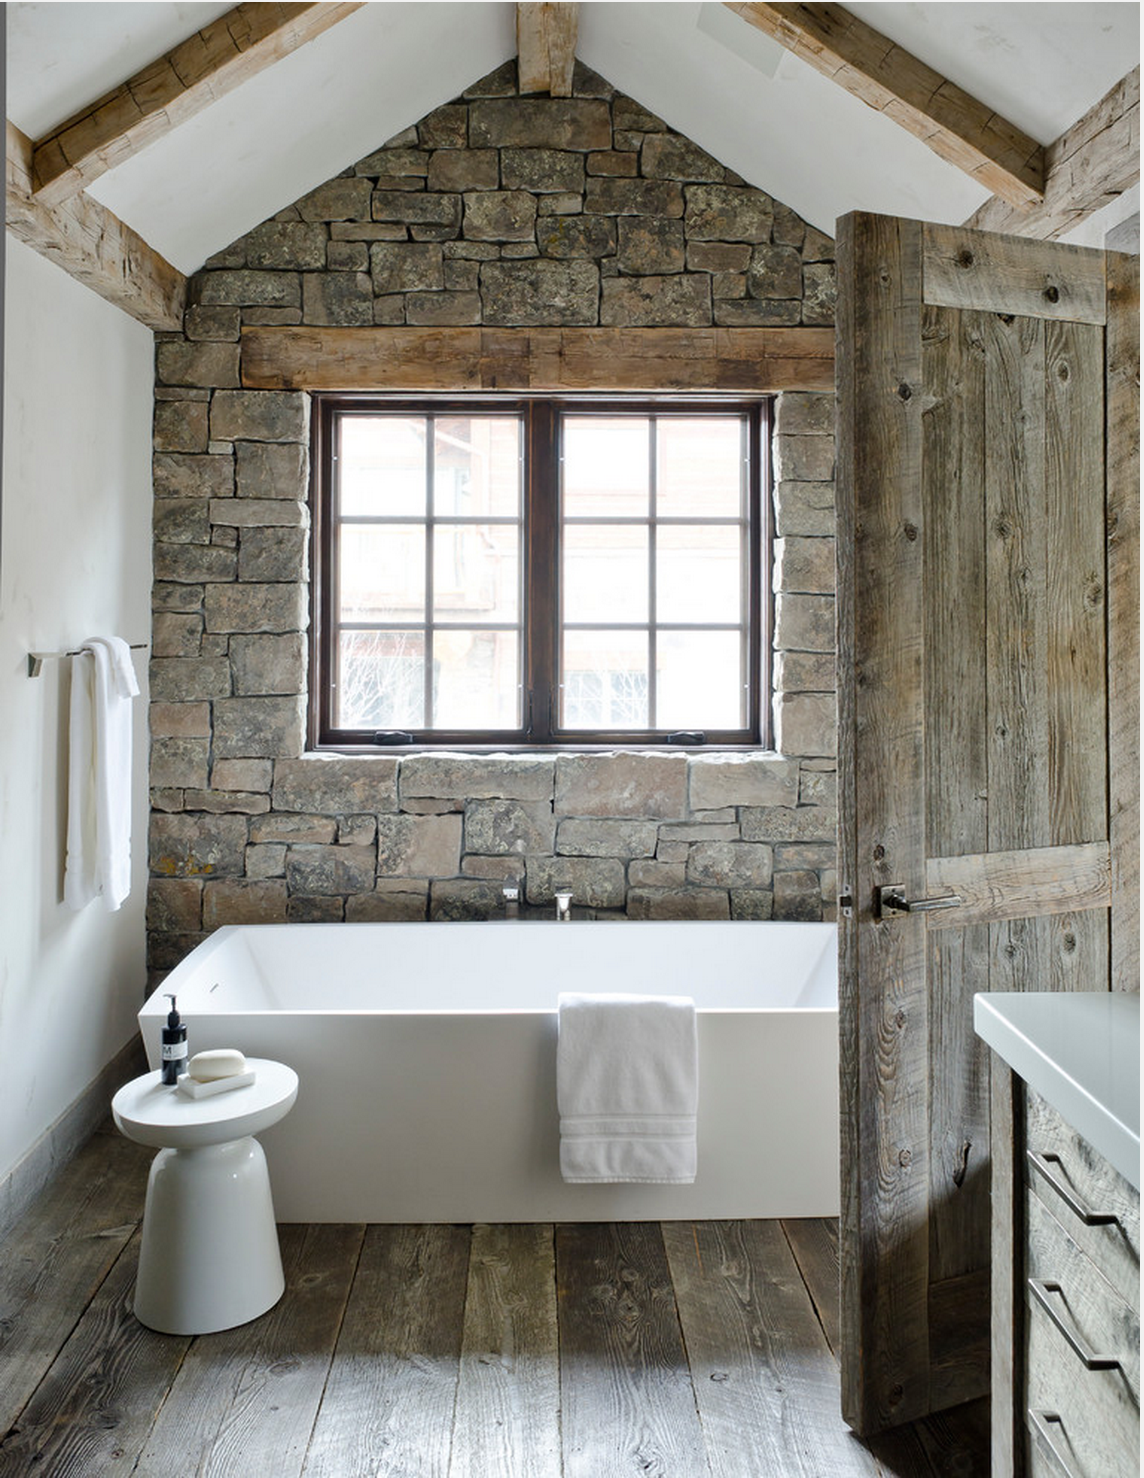 Rustic modern bathroom ideas - Stone Tub Reclaimed Wood Vaulted Ceiling Mountain Homes Rustic Bathroom Ideas